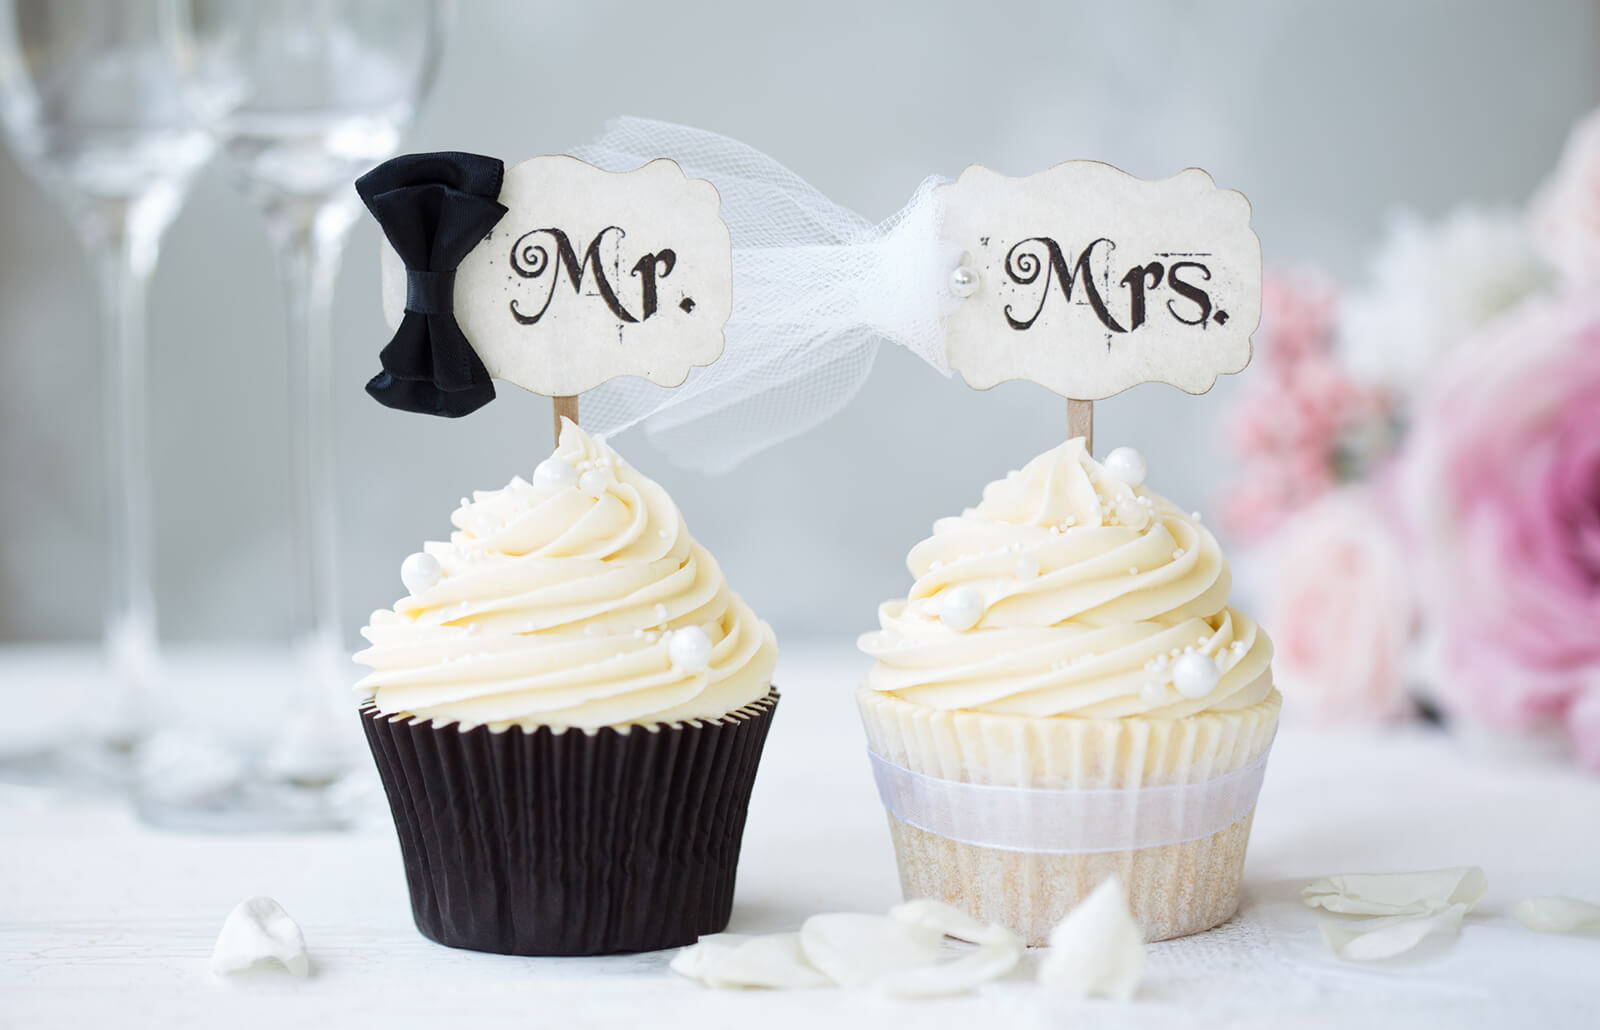 Wedding Cupcake Ideas.23 Wedding Cupcake Ideas Slideshow For Any Wedding Lovetoknow